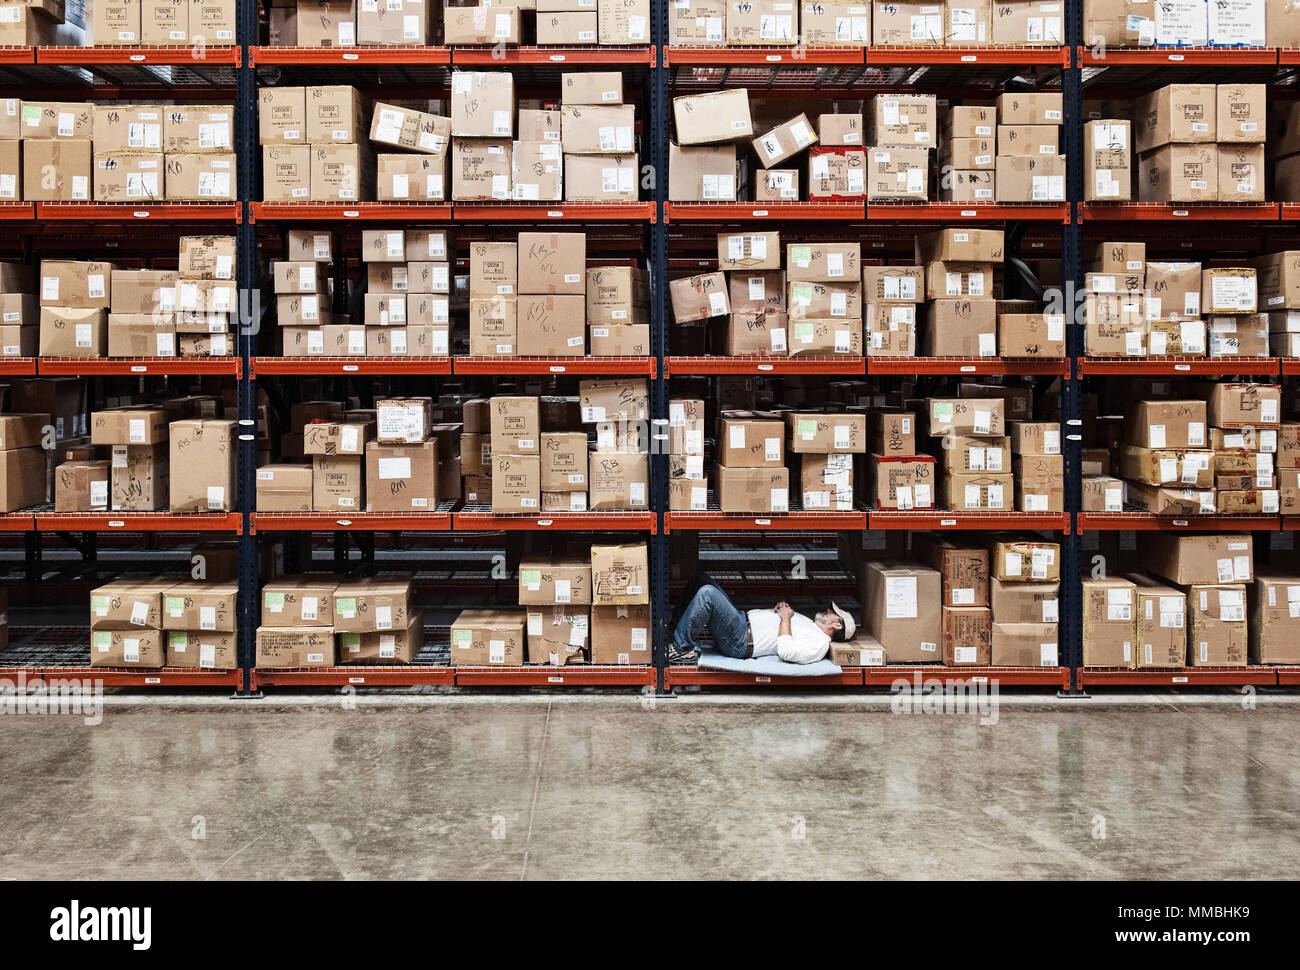 Warehouse worker taking a break next to large racks of cardboard boxes holding product in a distribution warehouse. - Stock Image